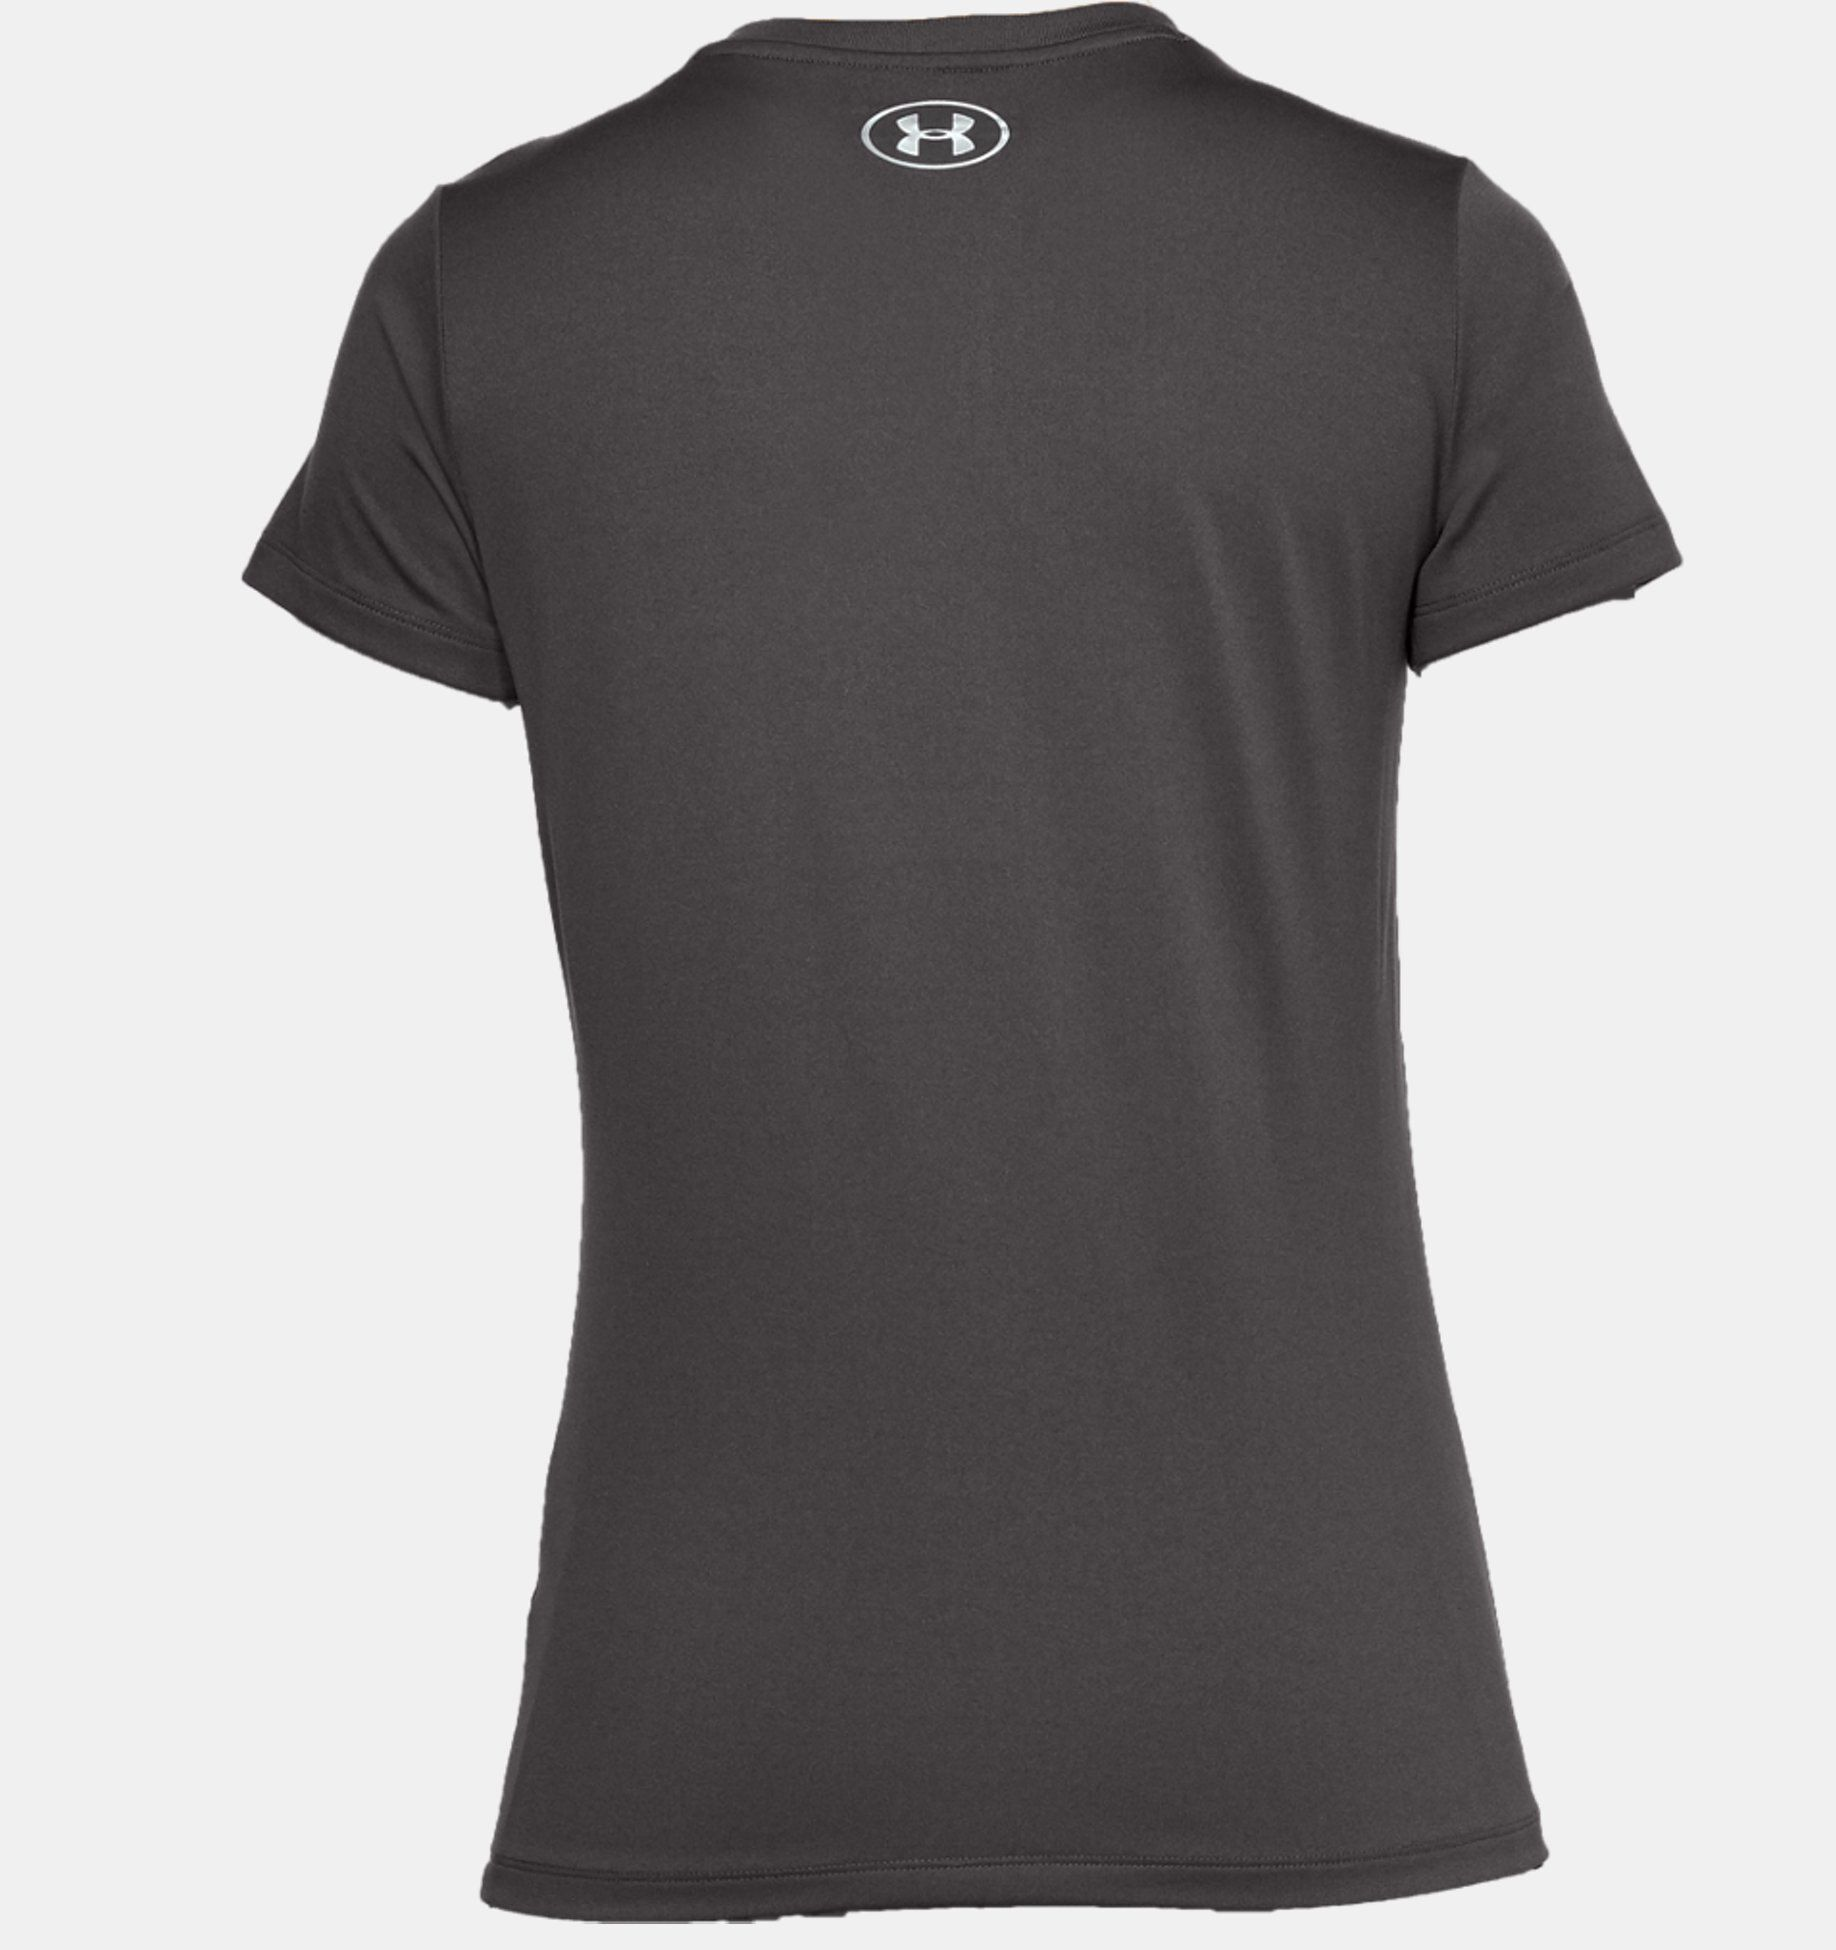 Camiseta Feminina  Under Armour Gola V Tech Metallic Graphic – Cinza  - REAL ESPORTE